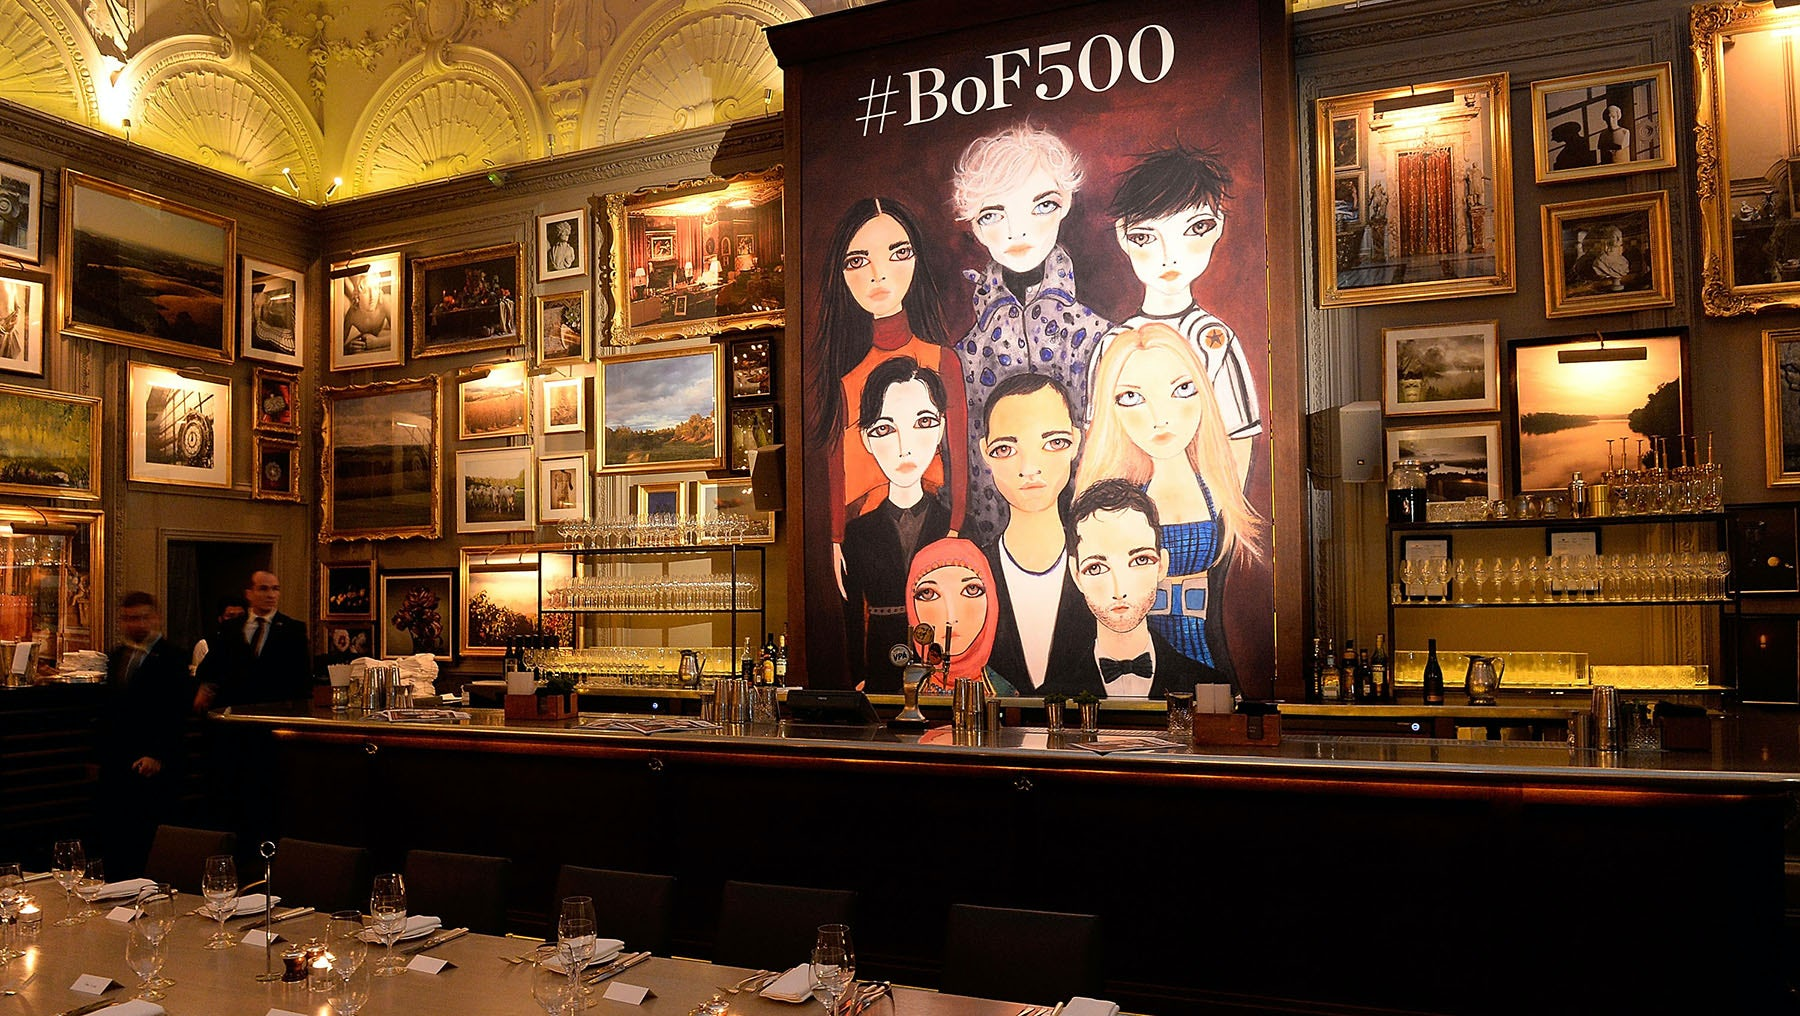 The Business Of Fashion #BoF500 Gala at the London Edition Hotel | Photo: Dave Bennett